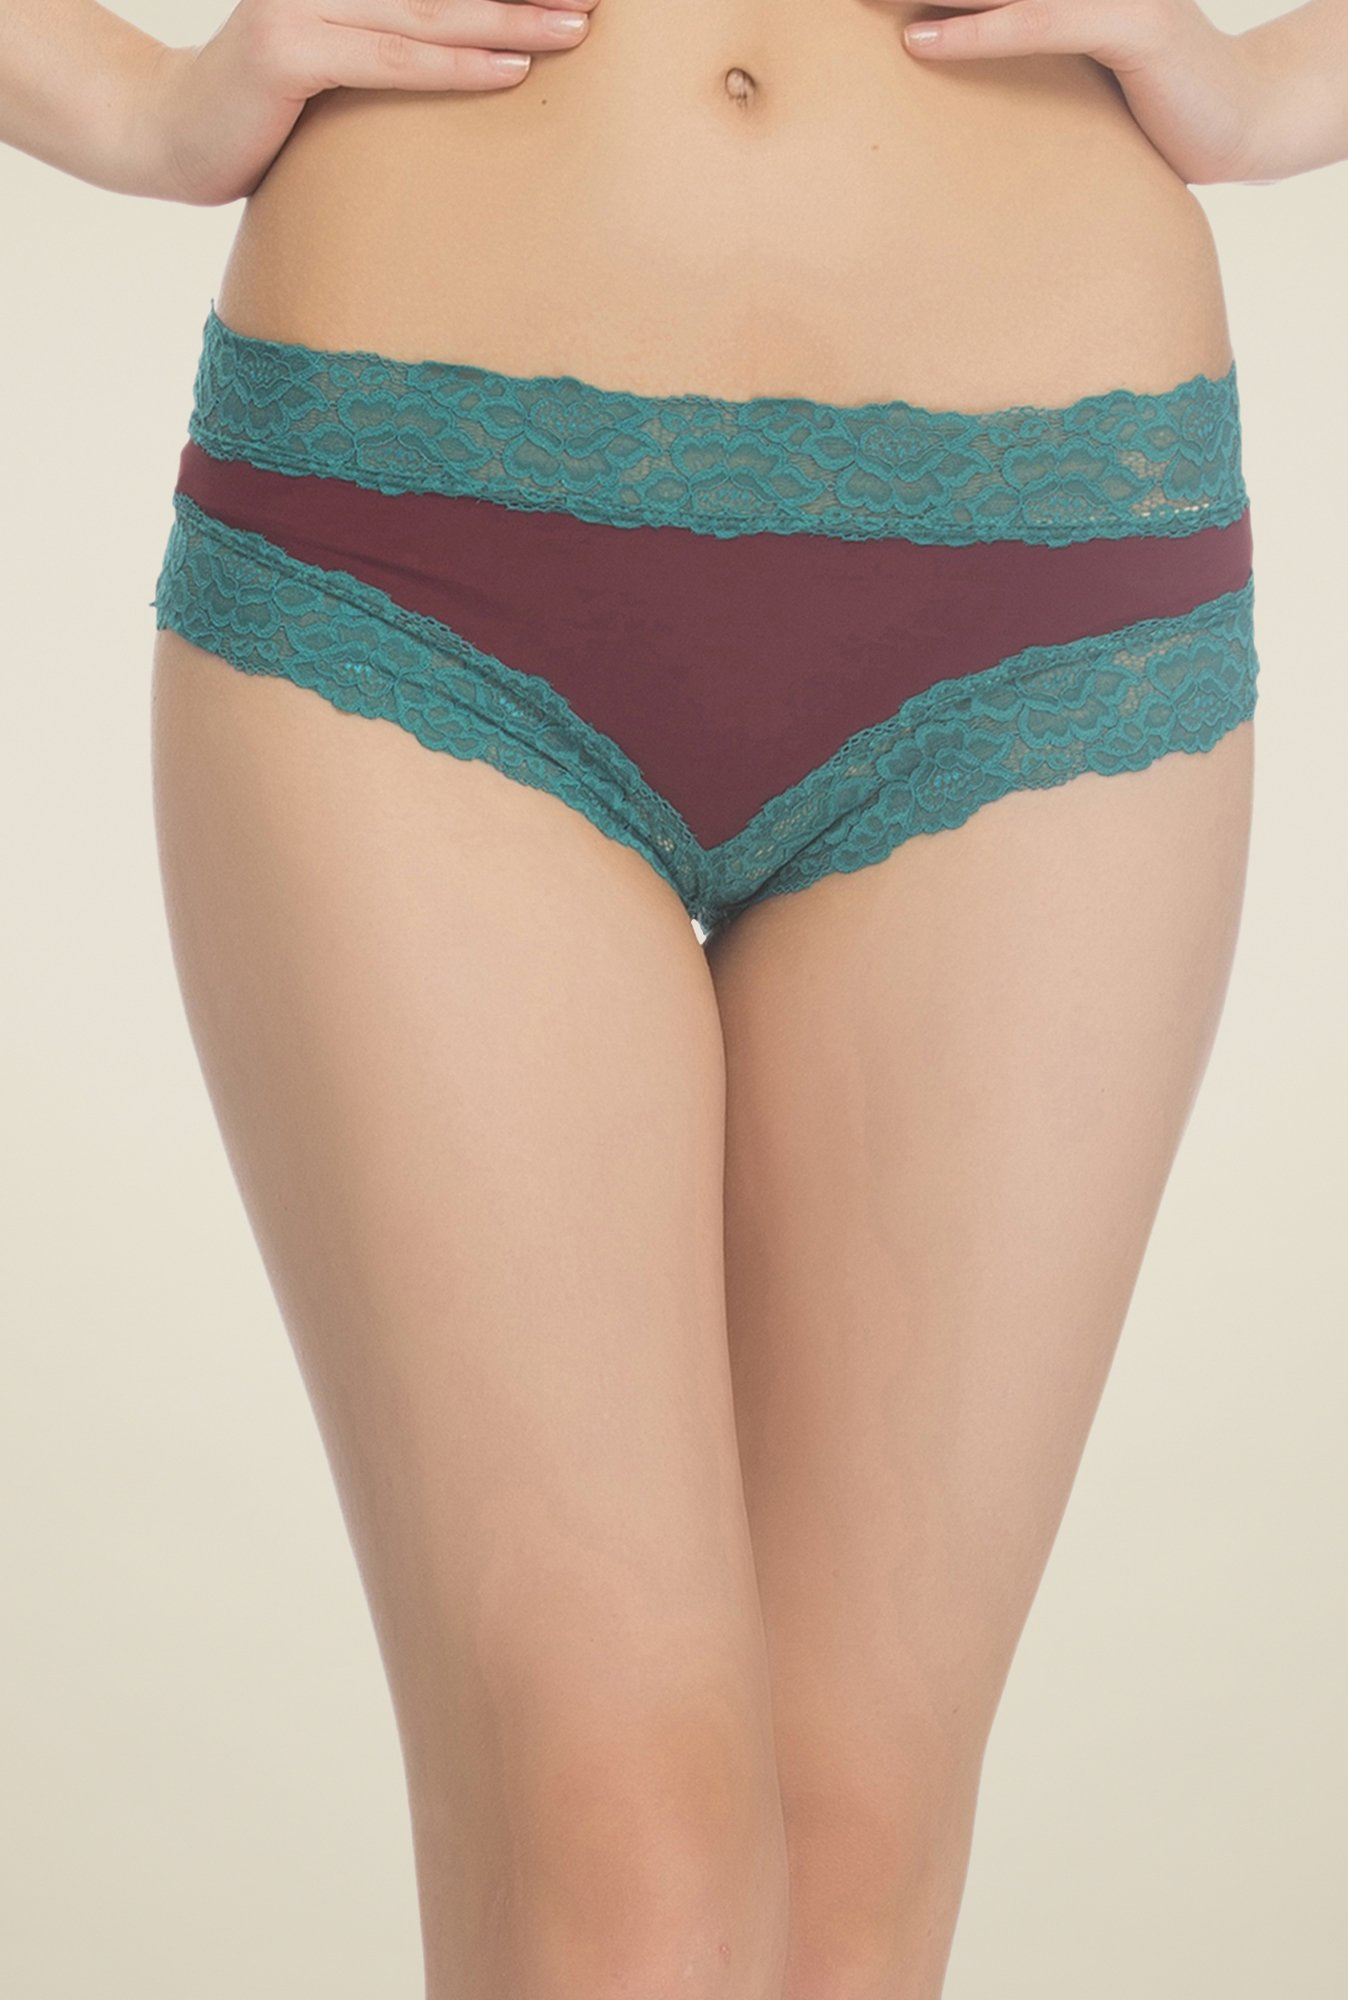 Clovia Maroon & Teal Lace Hipster Panty